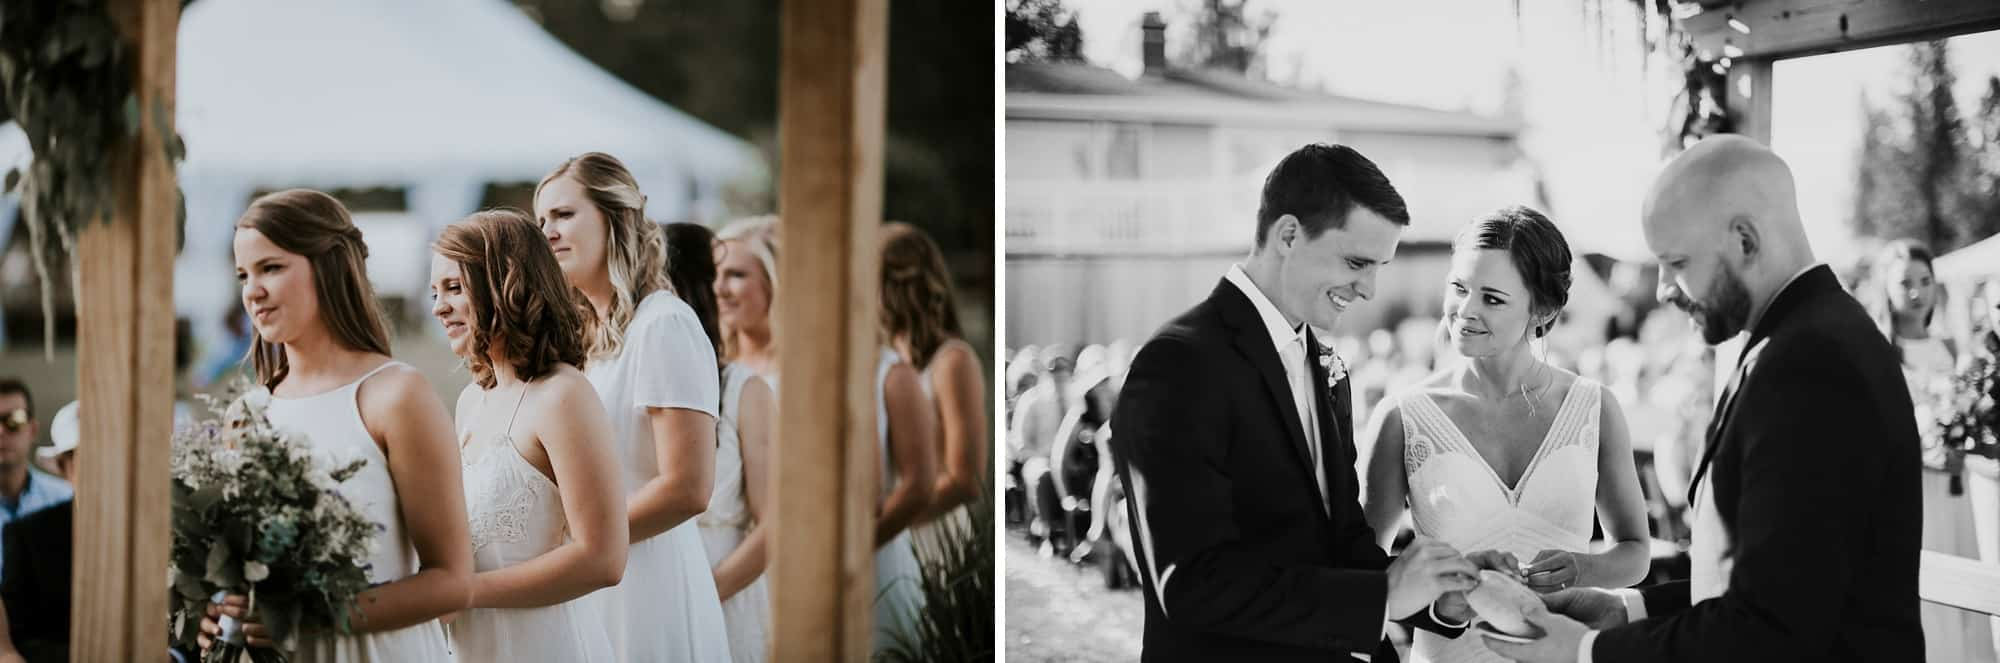 maisie-morgan-spokane-washington-pacific-northwest-backyard-wedding-00032